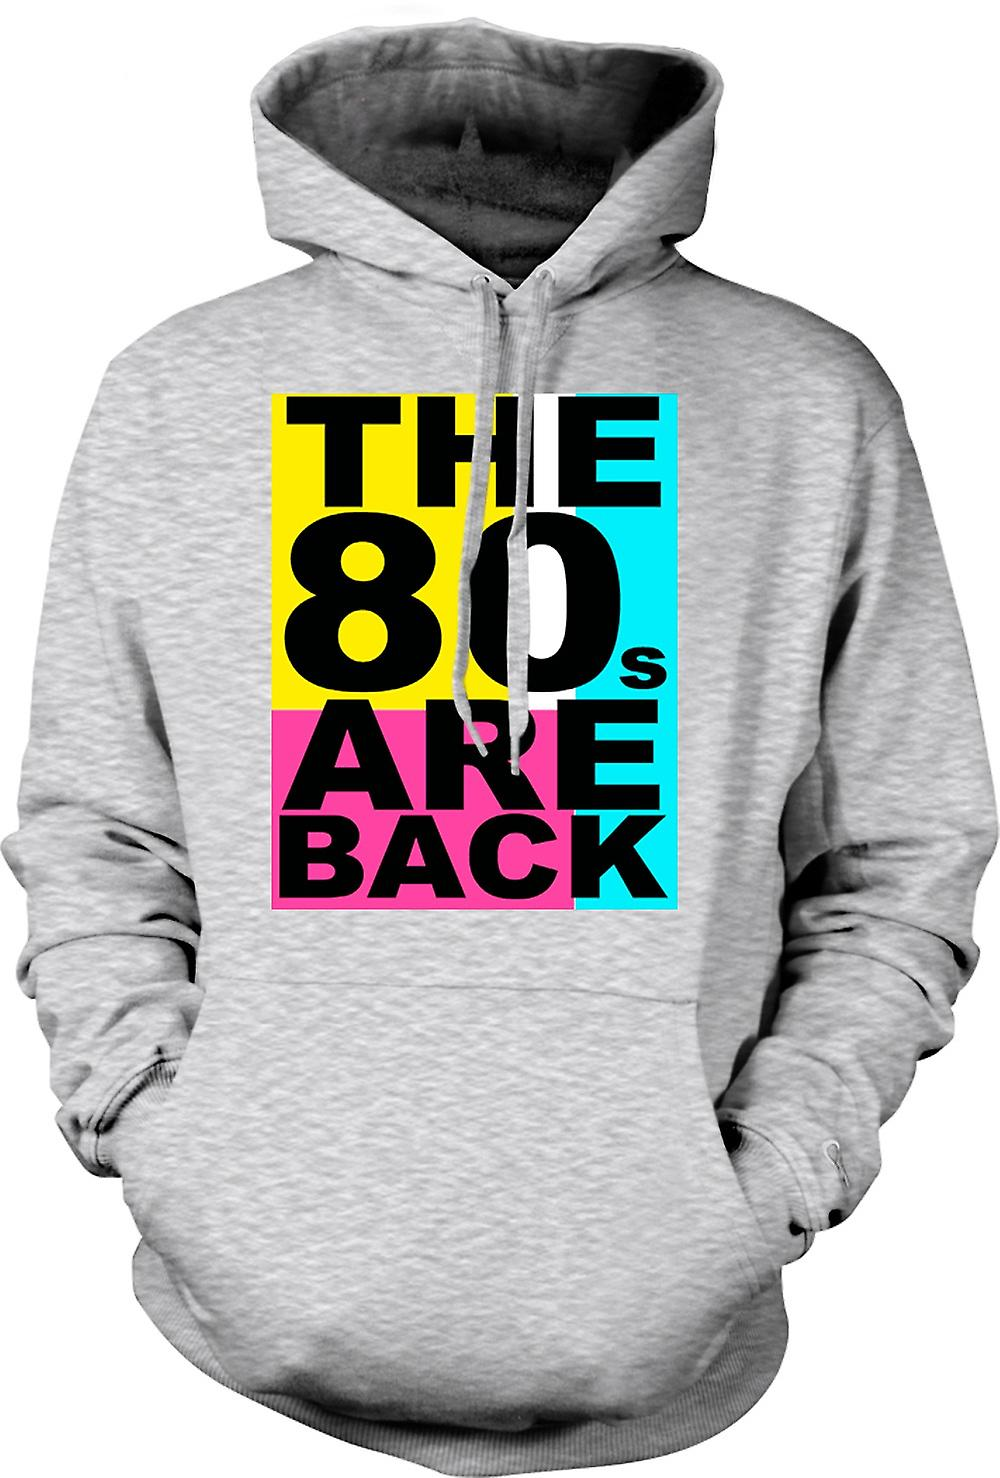 Mens Hoodie -  The 80s Are Back - Funny